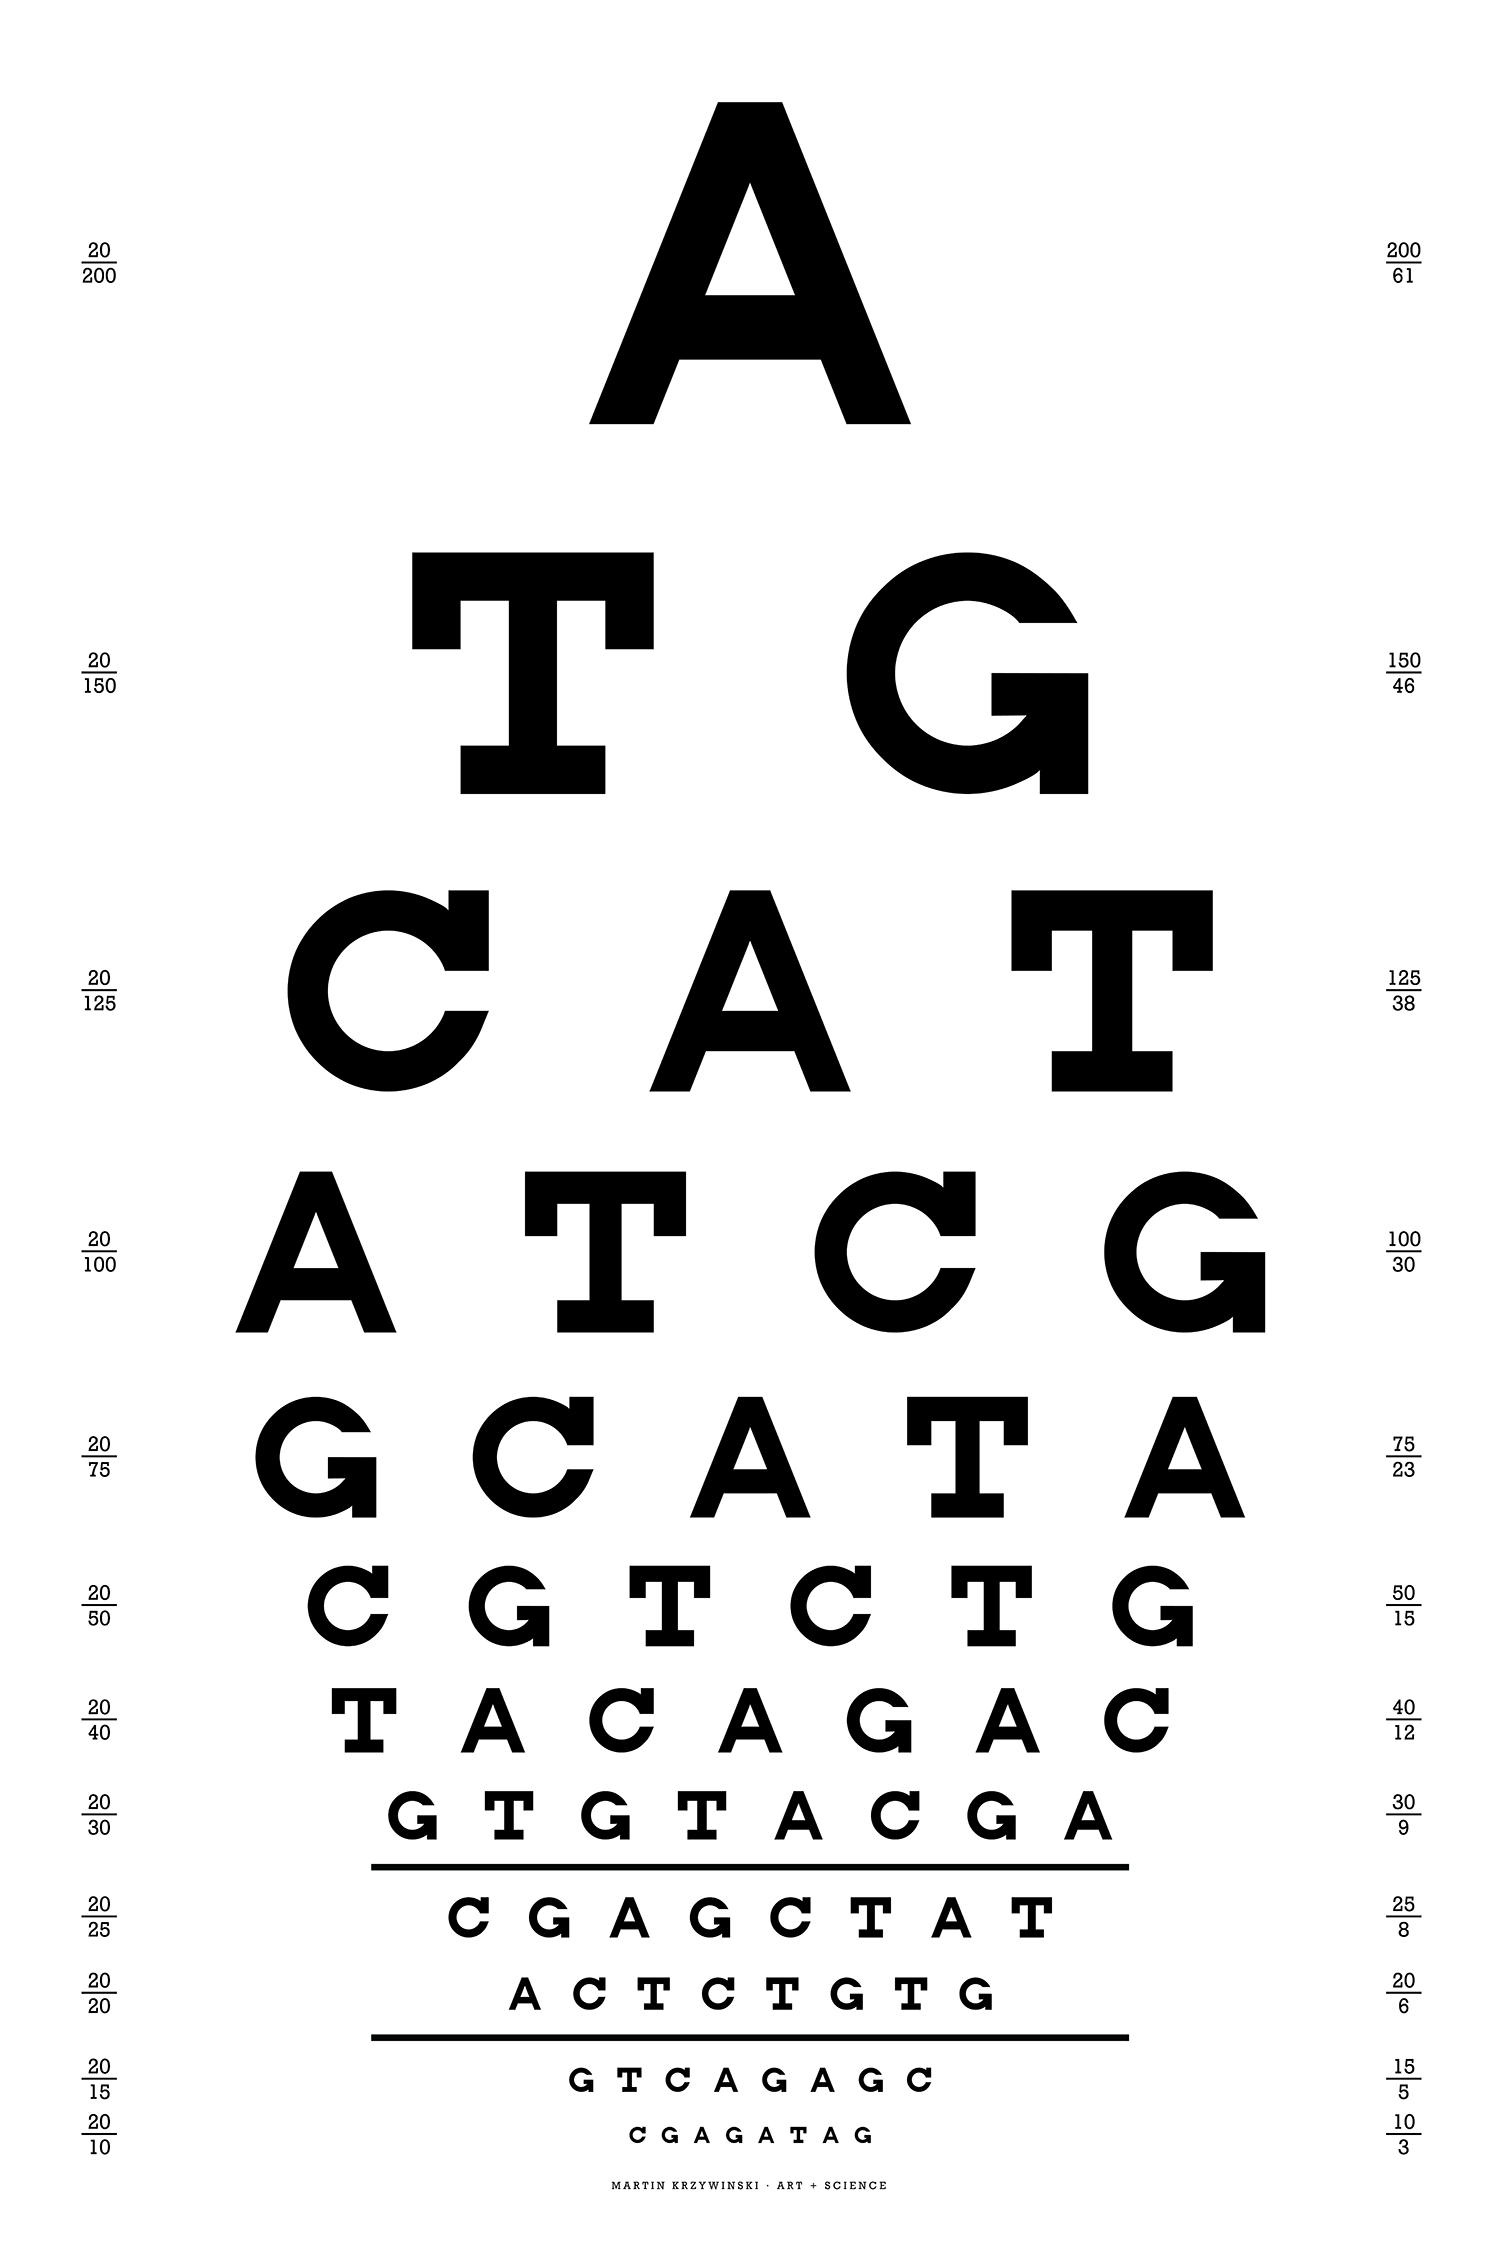 snellen-chart-genetic-sequence-01.png